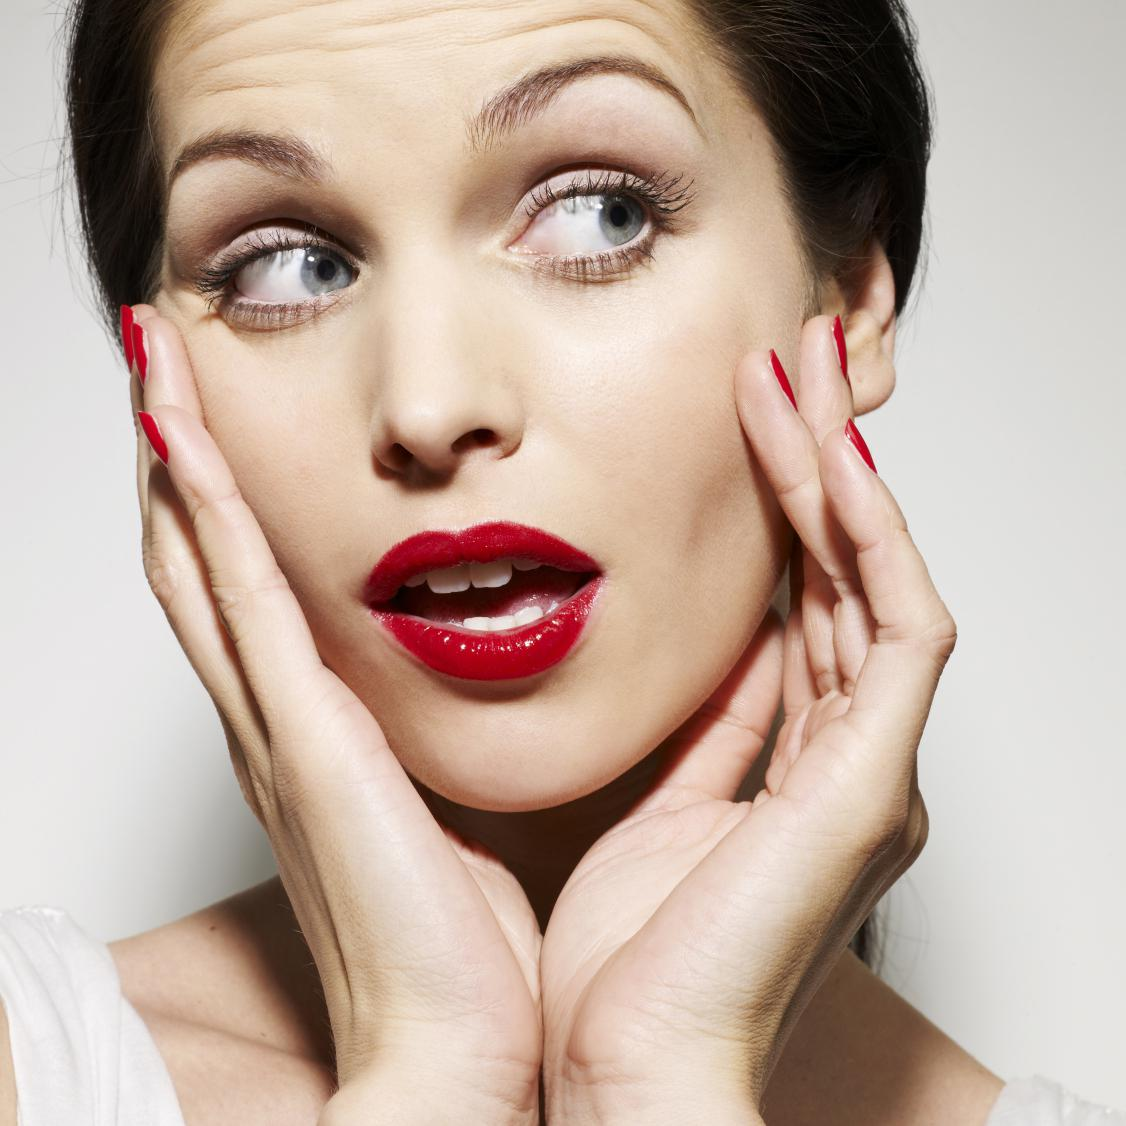 maigrir du visage comment maigrir du visage elle. Black Bedroom Furniture Sets. Home Design Ideas